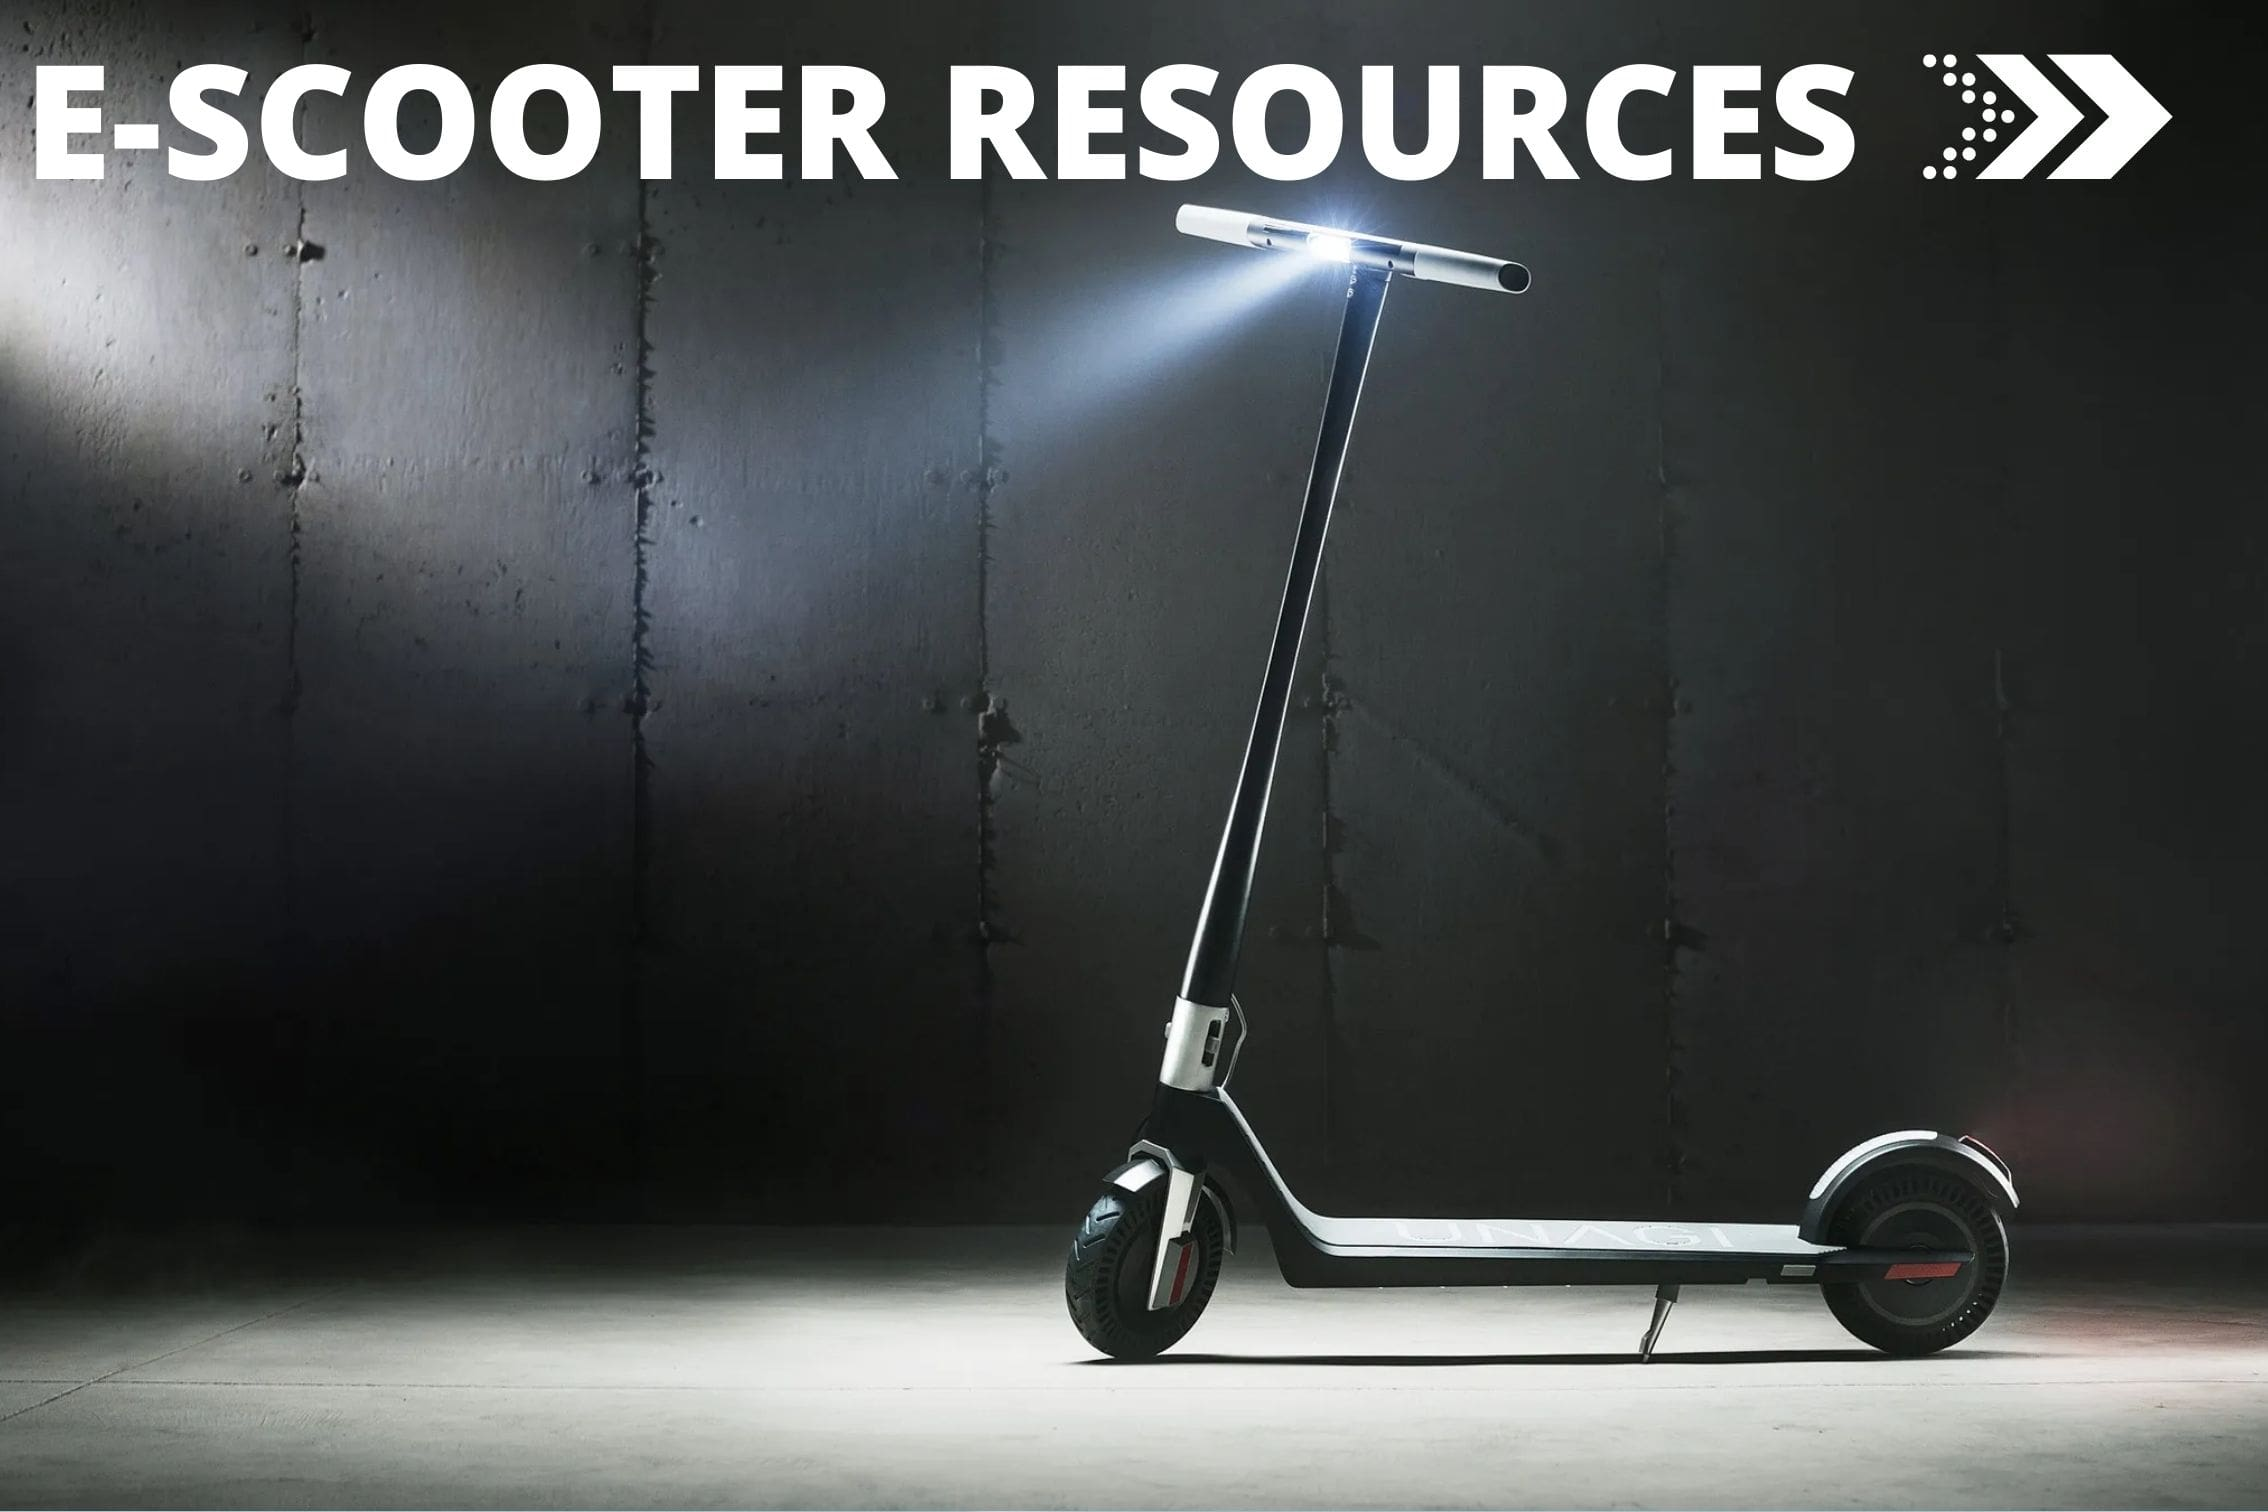 E-Scooter Resources